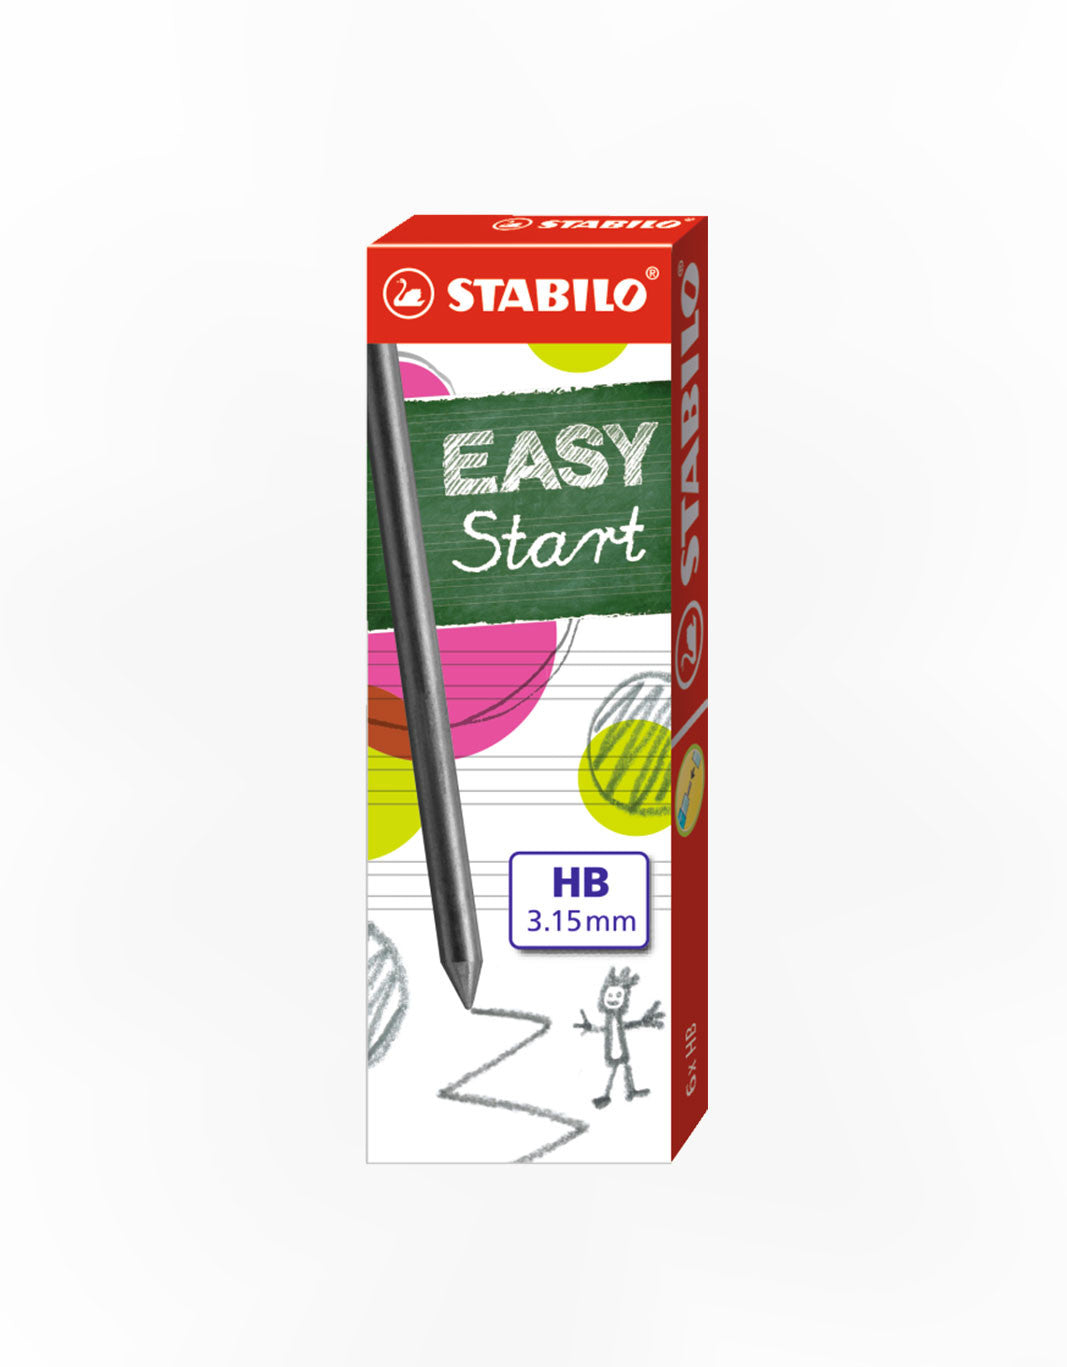 STABILO EASYstart Ergo 3.15mm Lead refills HB set of 6